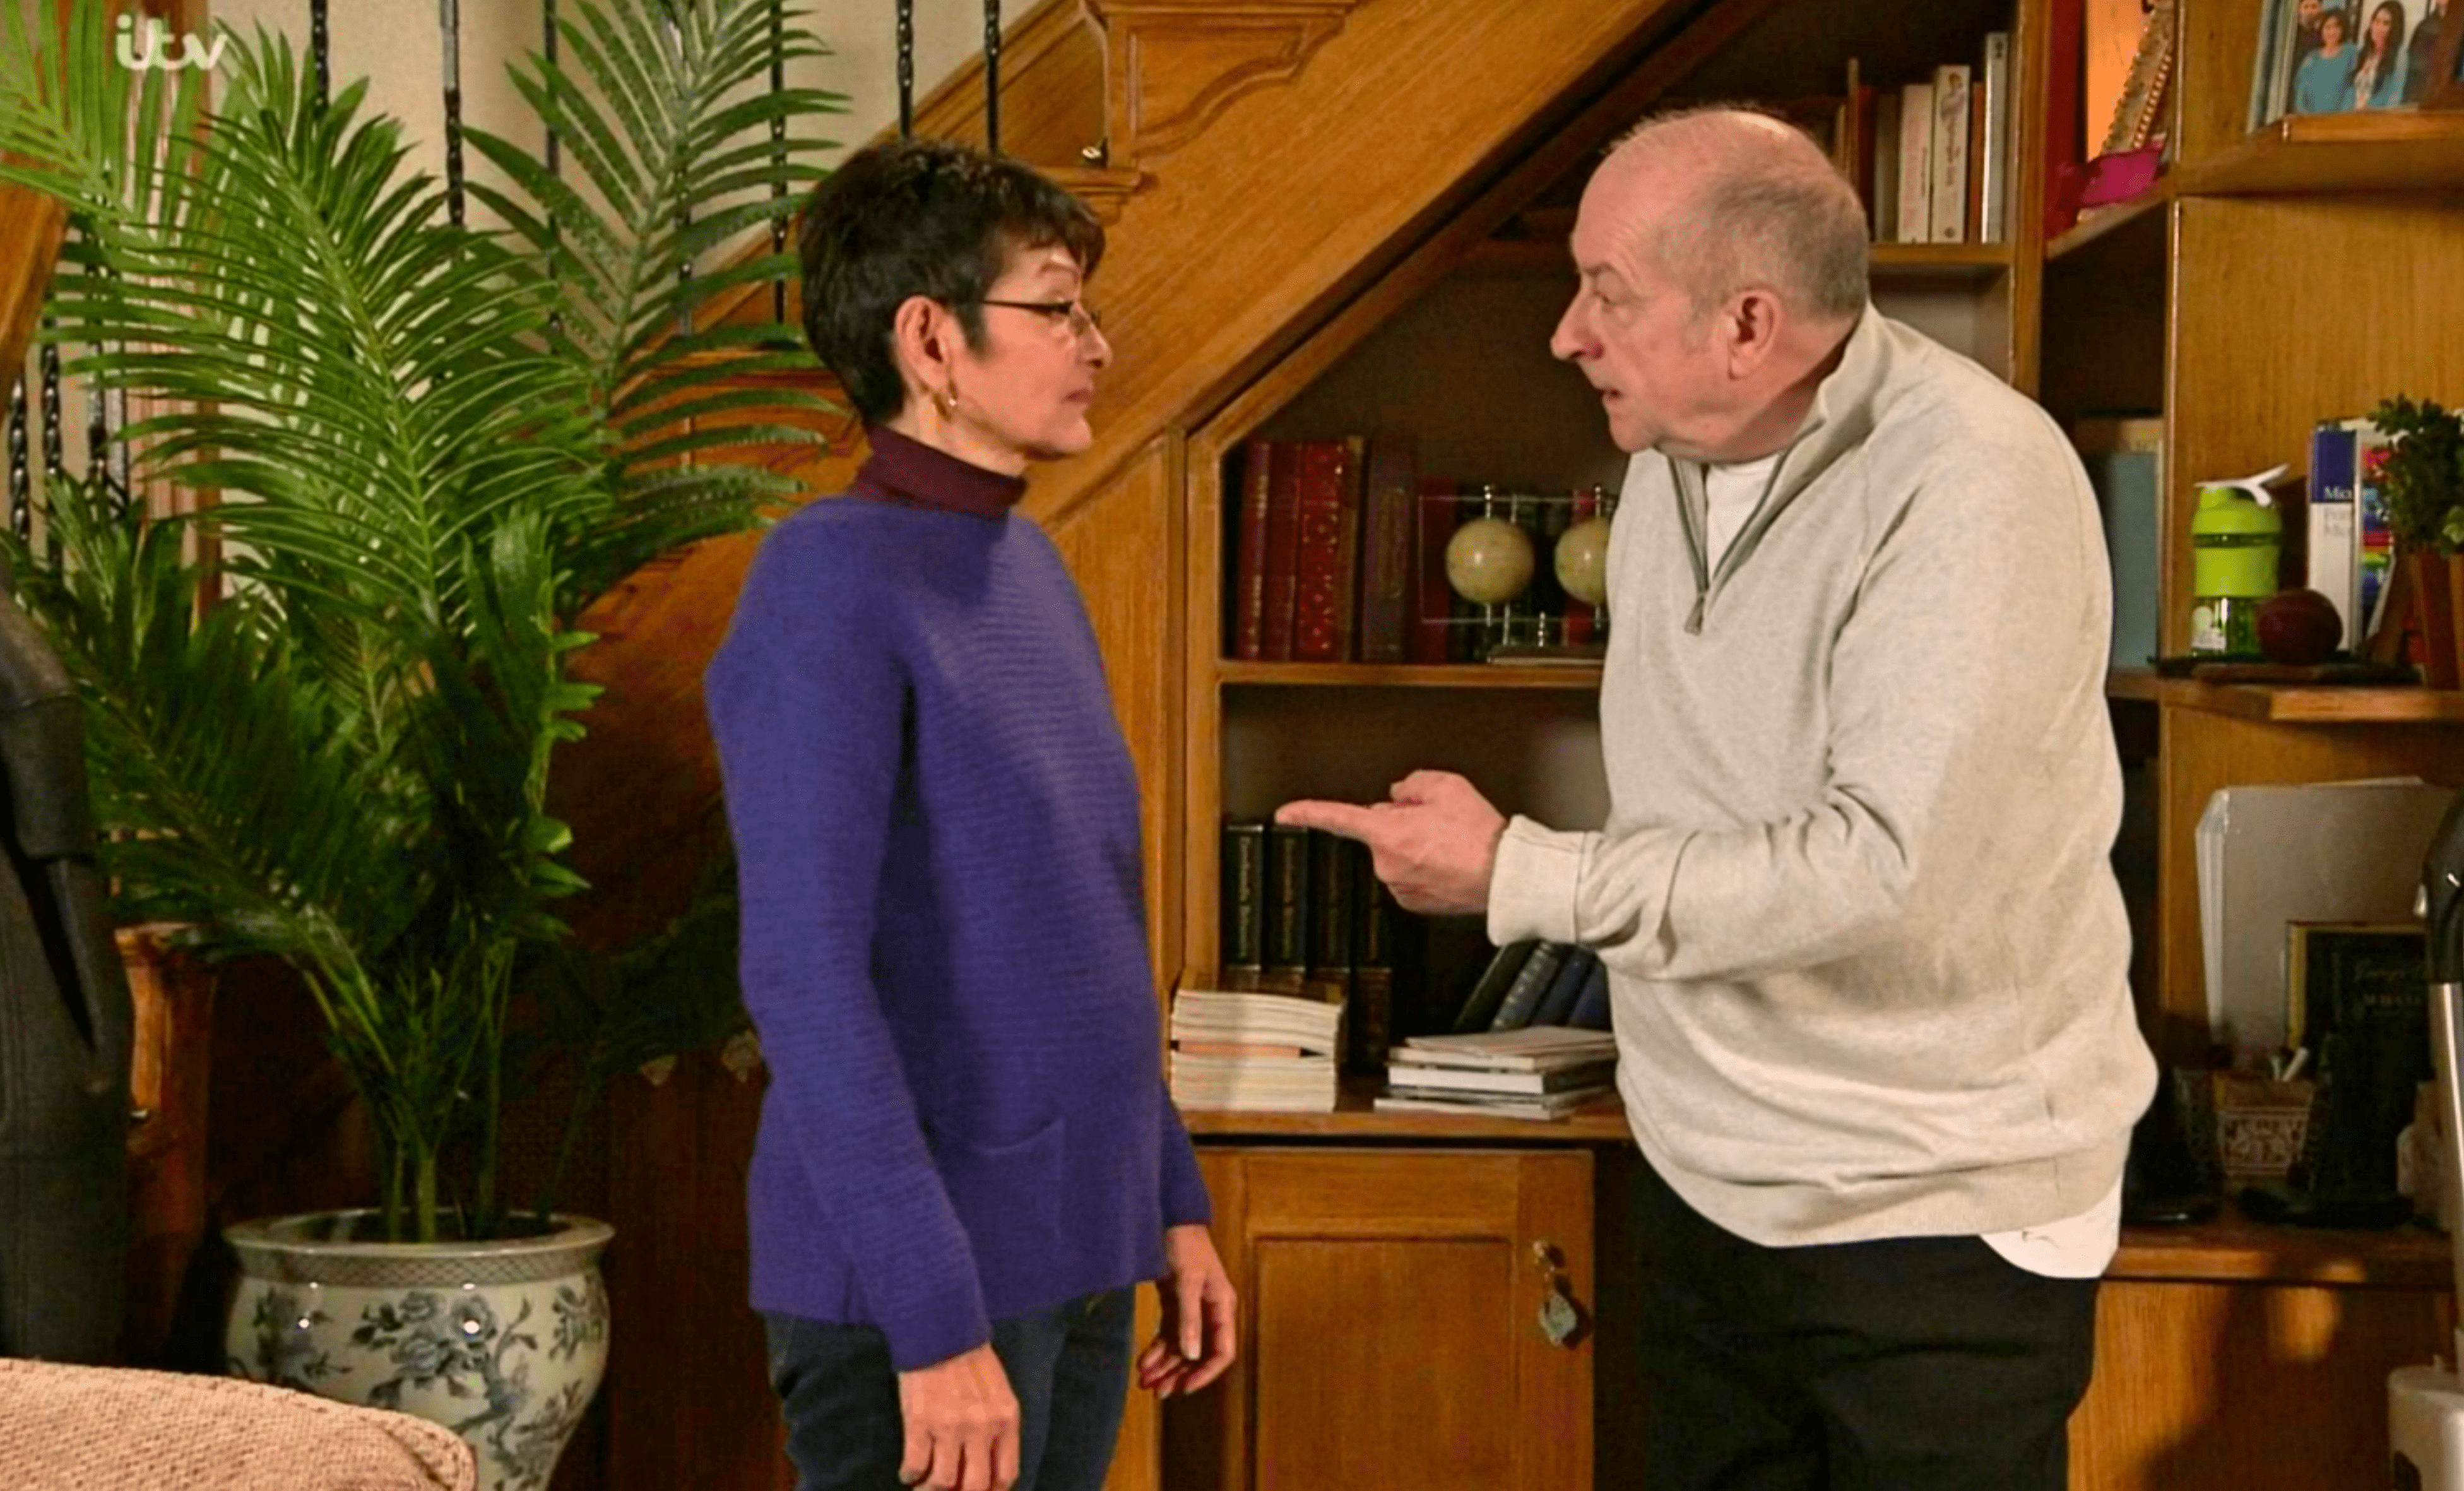 What is Clare's Law as Yasmeen calls police on Geoff in Coronation Street?